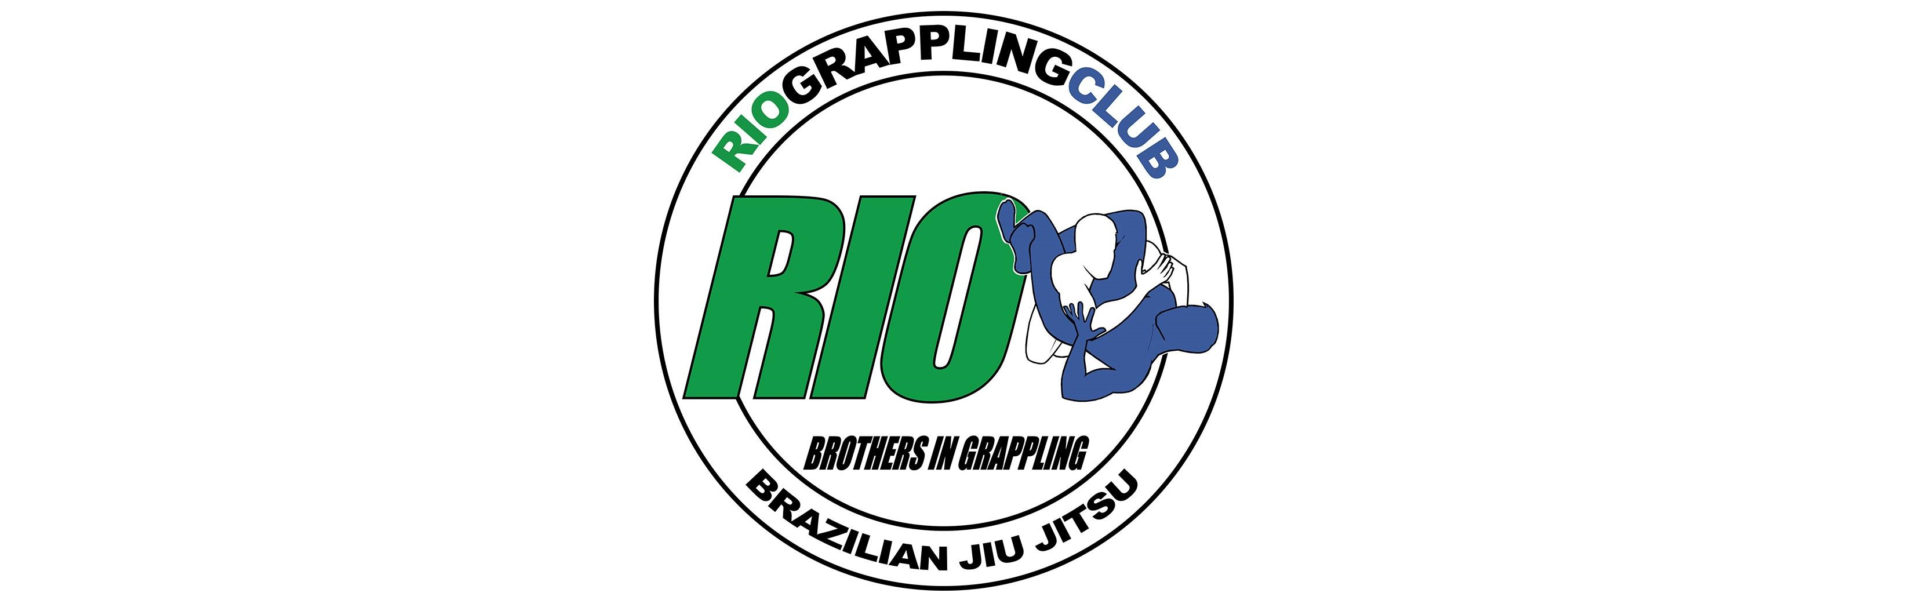 Brothers In Grappling